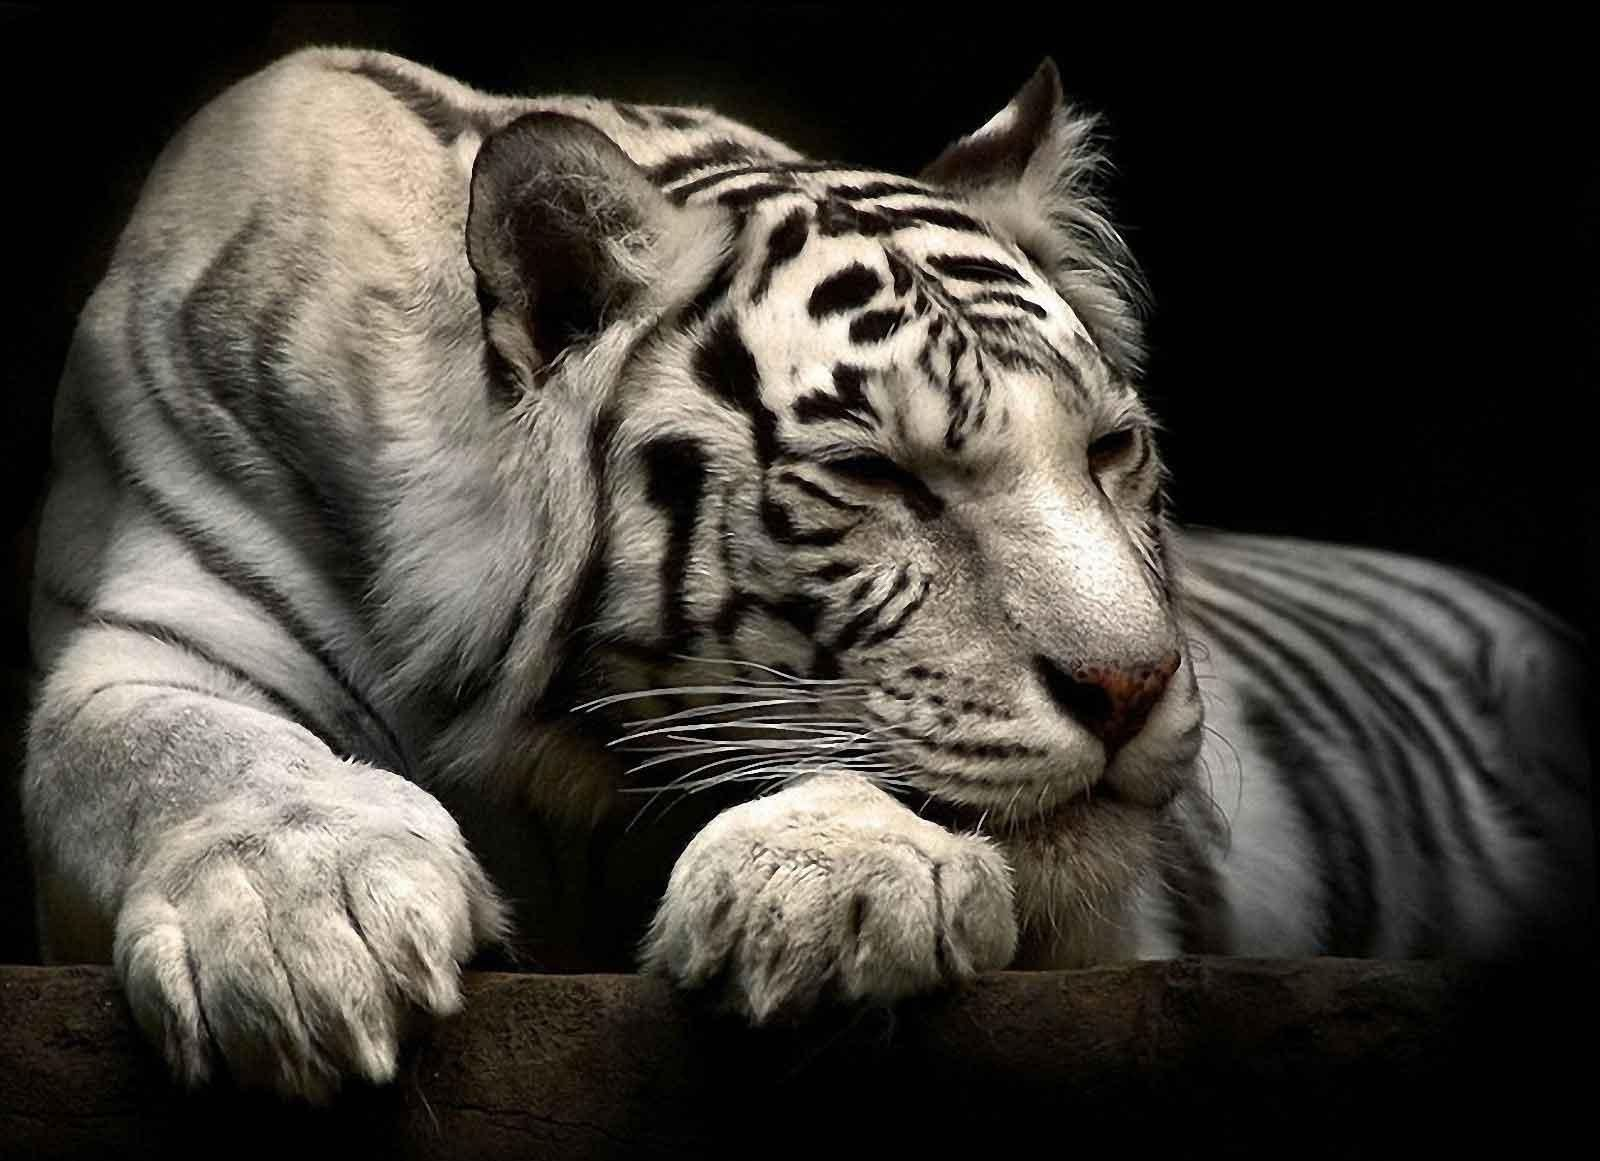 White Siberian Tiger Wallpapers Wallpaper Cave Pet Tiger Animal Wallpaper Siberian Tiger